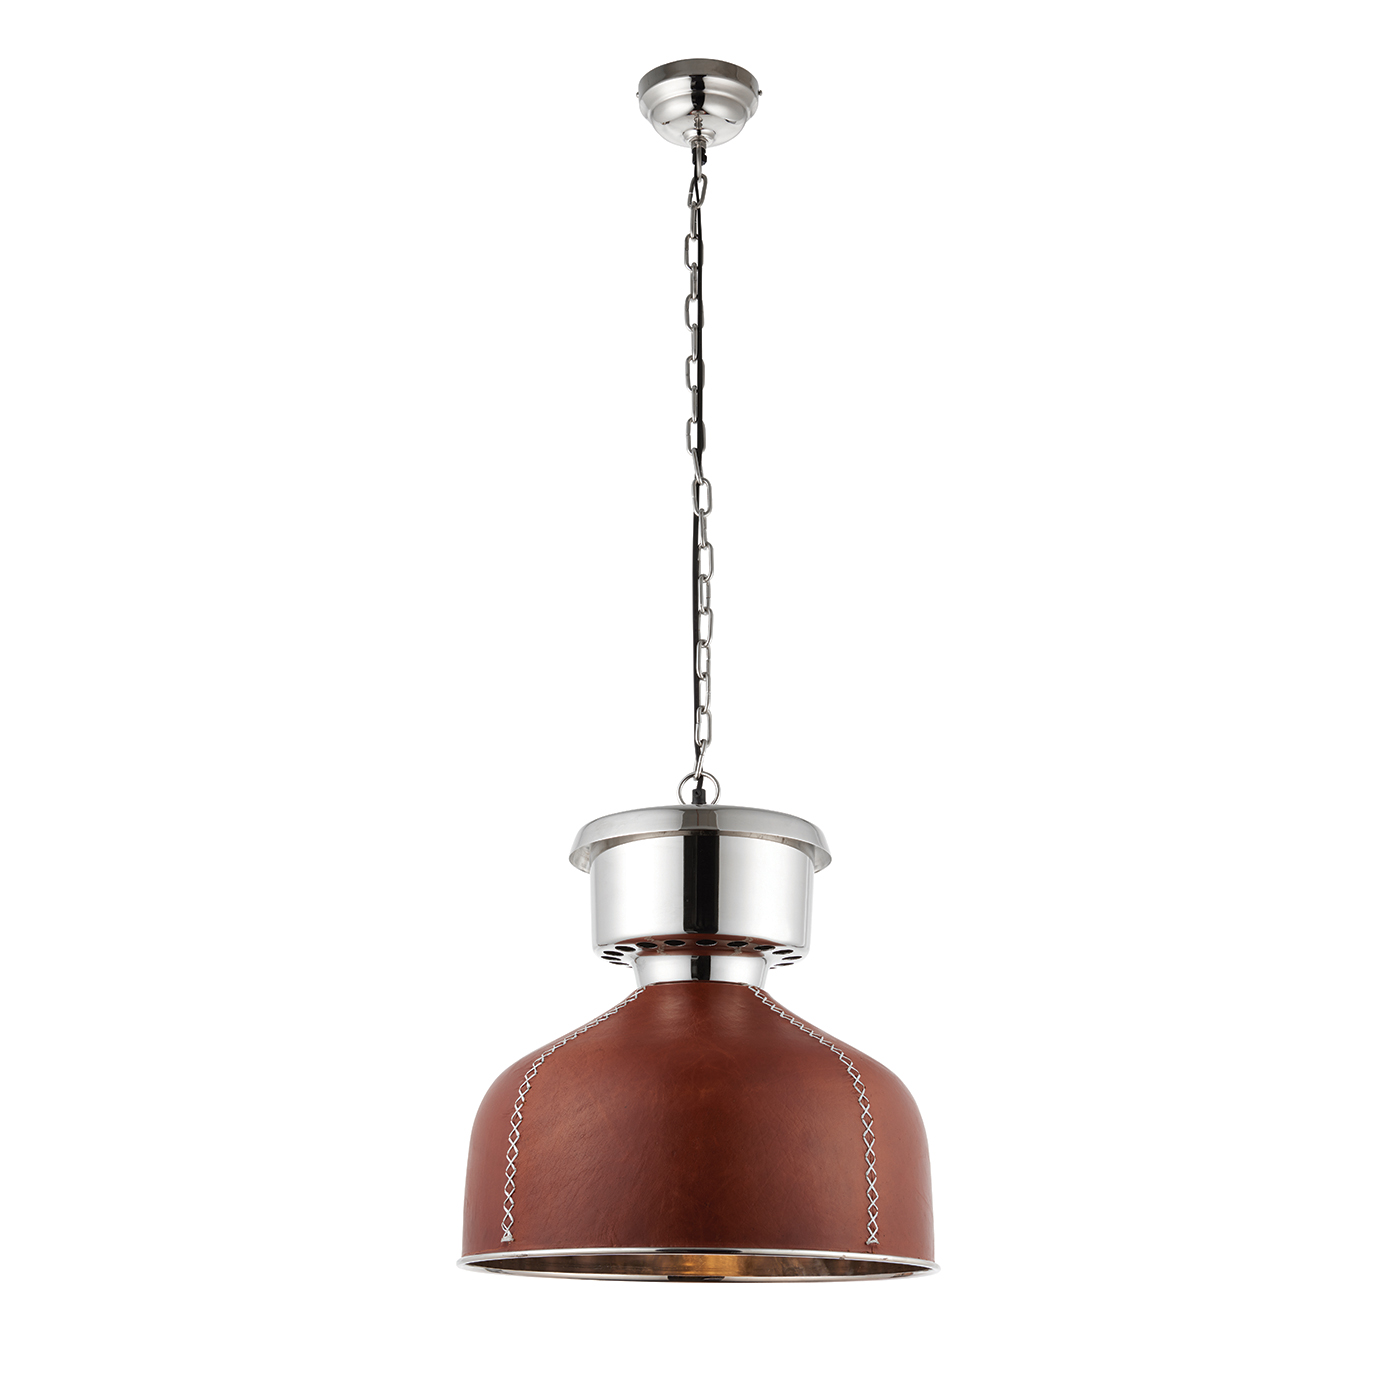 Endon Michigan pendant 1x 40W Golden brown leather & bright nickel plate